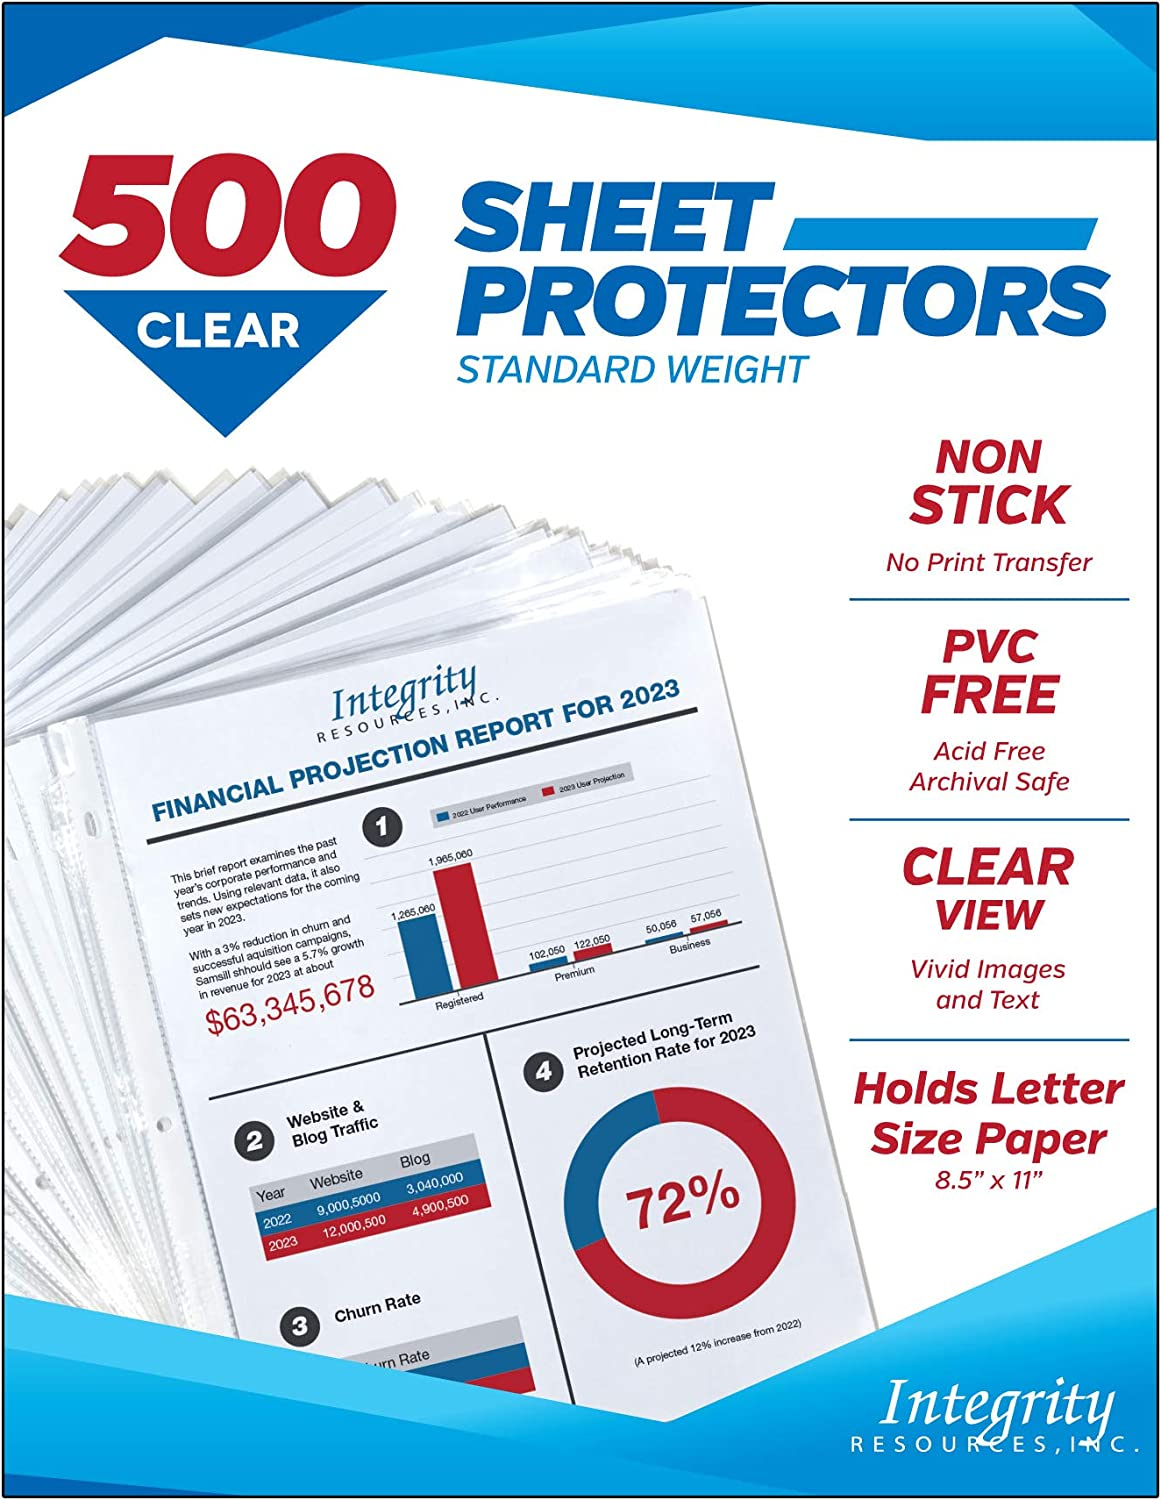 Integrity Resources Crystal Clear Durable Sheet Protectors, Archival Safe, PVC Free, Acid Free, Polypropylene, 8.5 x 11 Inch, Top Loading, 3 Hole Punched for 3 Ring Binder, Bulk Pack 500, 52500